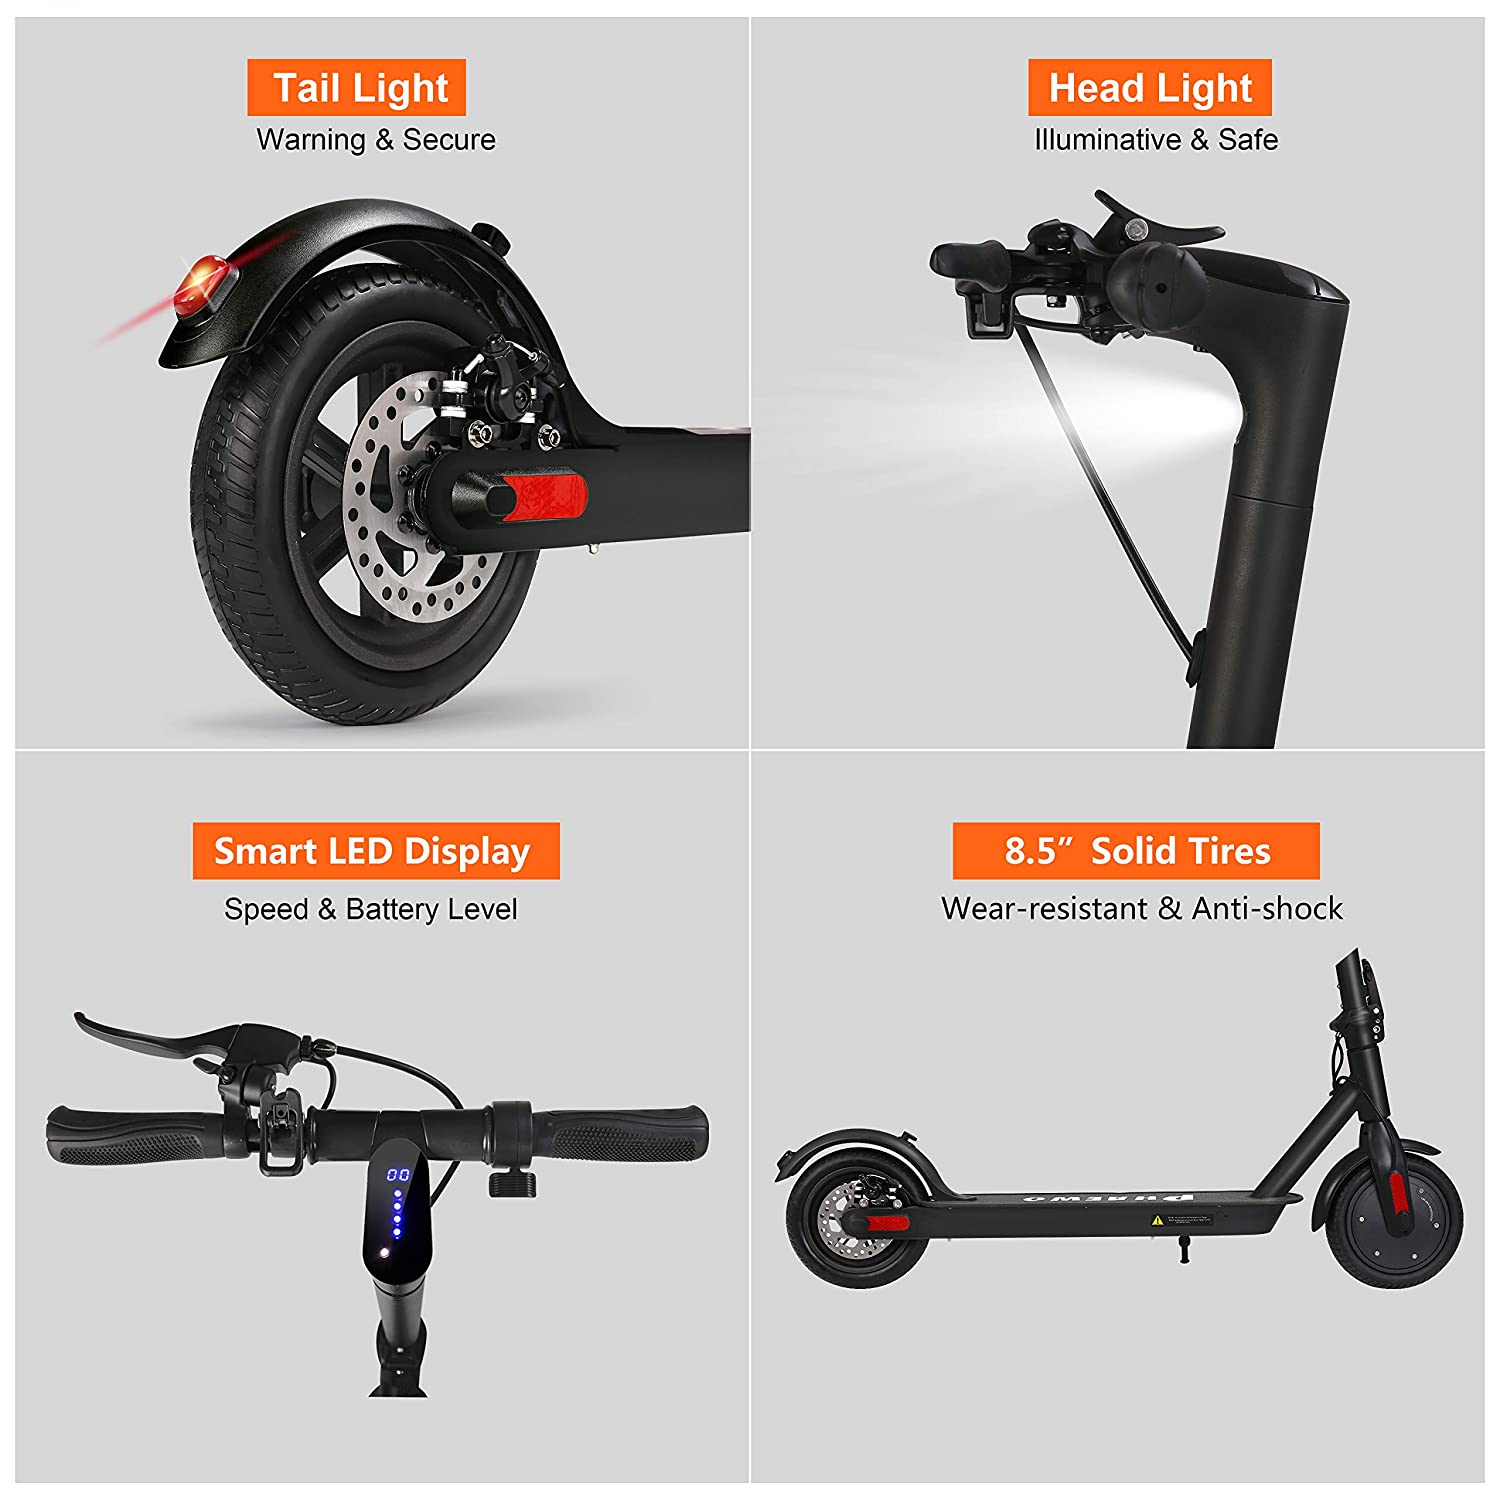 Phaewo Electric Scooter, Folding Adult Scooter, Portable Pro E-Scooter, 8.5inch Solid Tires,12 Miles Range, Max Speed 15 MPH, for Commuting and Travel